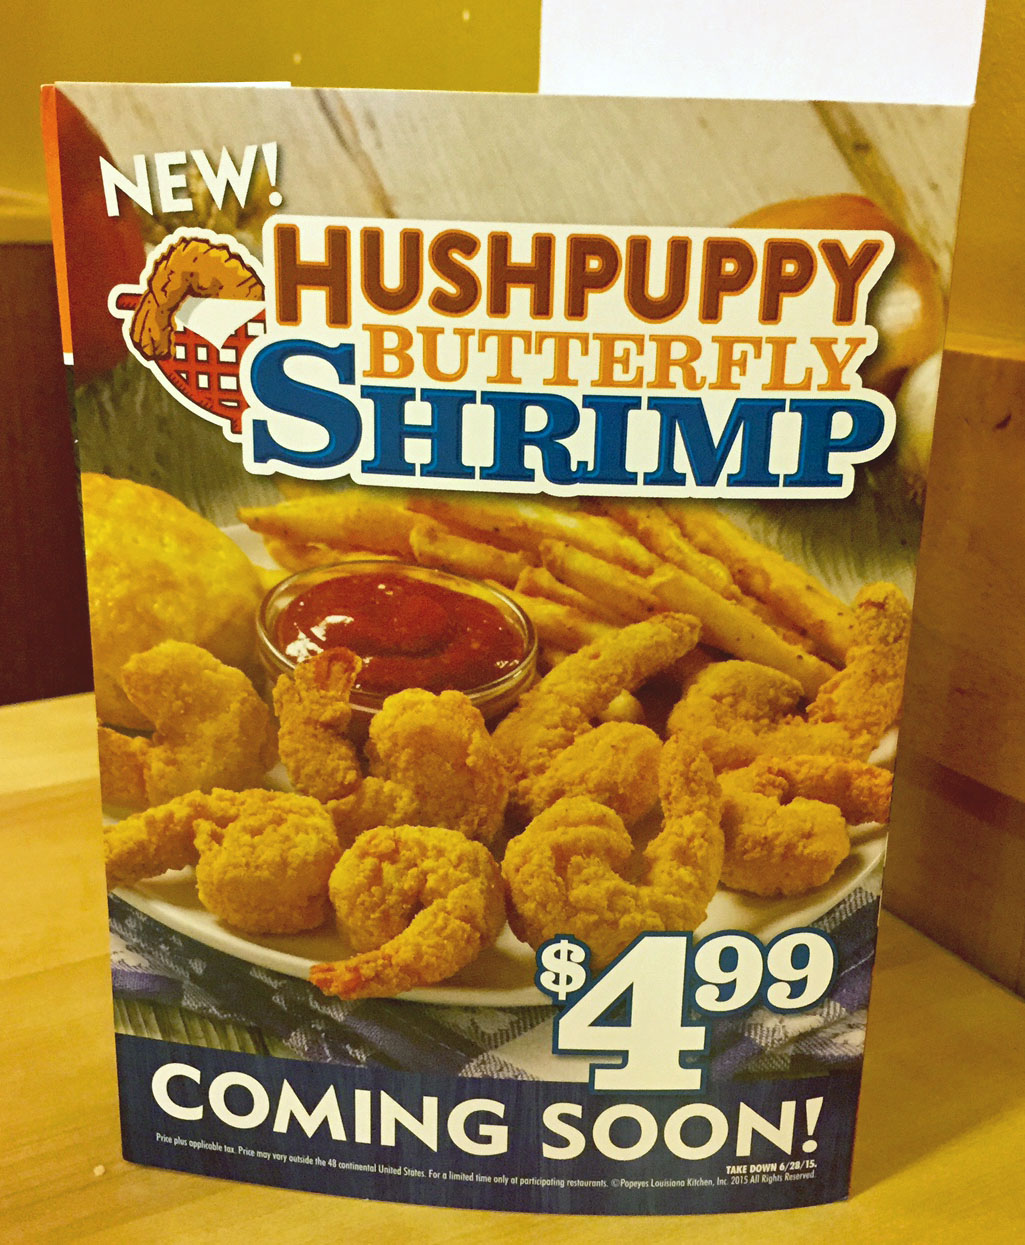 Winsome Pops Hushpuppy Butterfly Shrimp Smoky Garlic Chile Ken Get My Mouf Pops Big Box Meal 2018 Pops Big Box Review nice food Popeyes Big Box